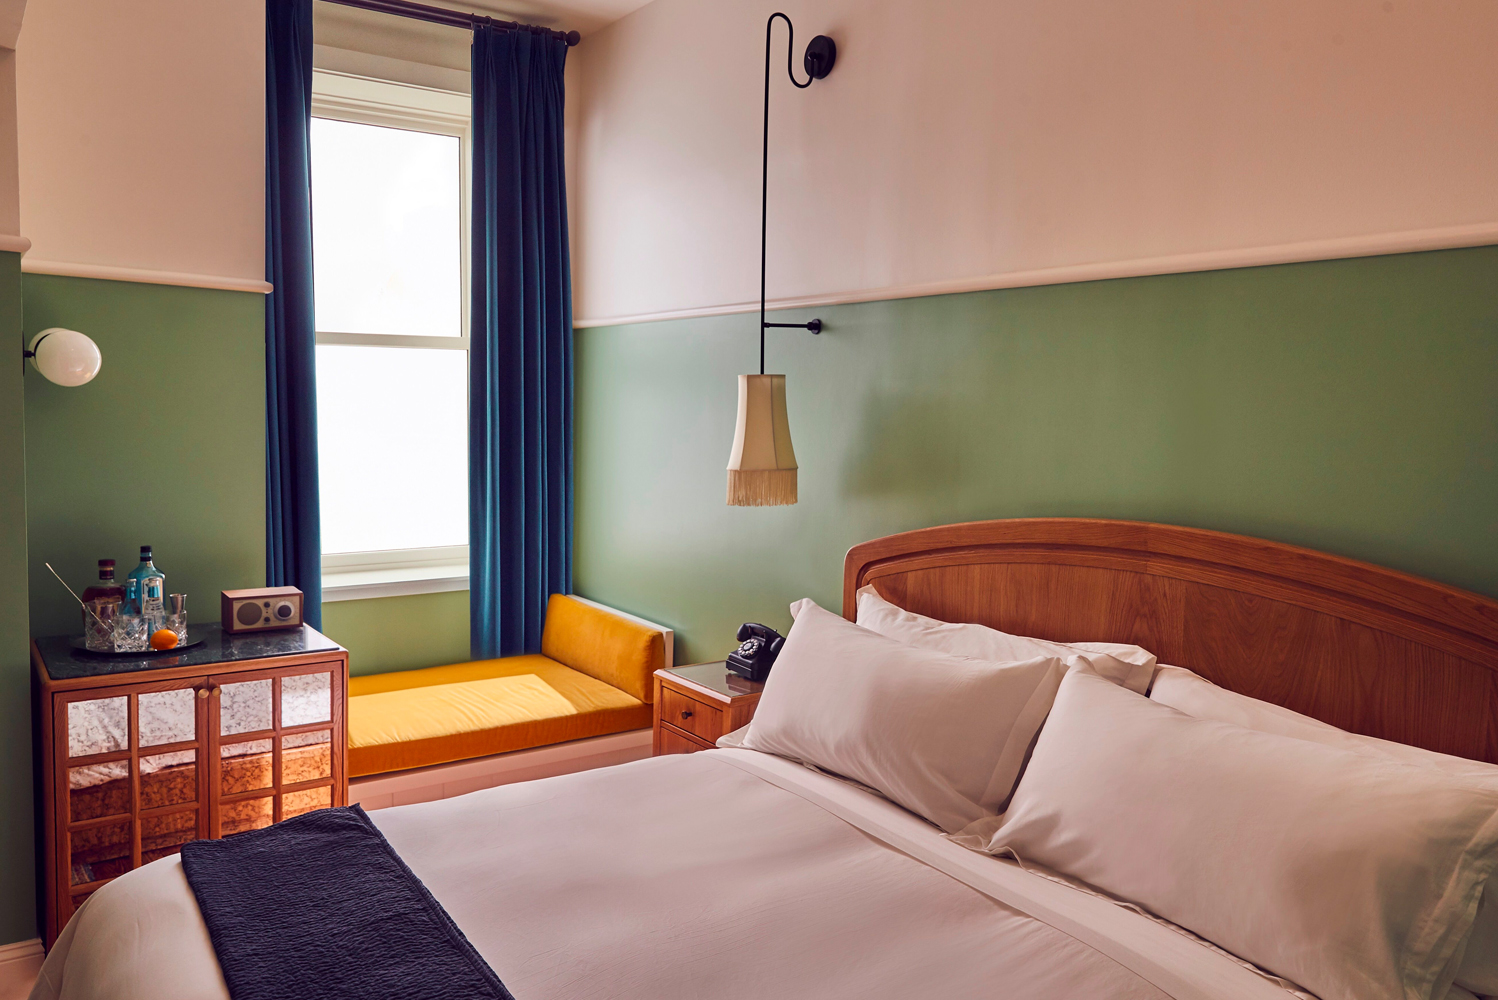 The rooms have residential feel, using shades of green and eggplant.